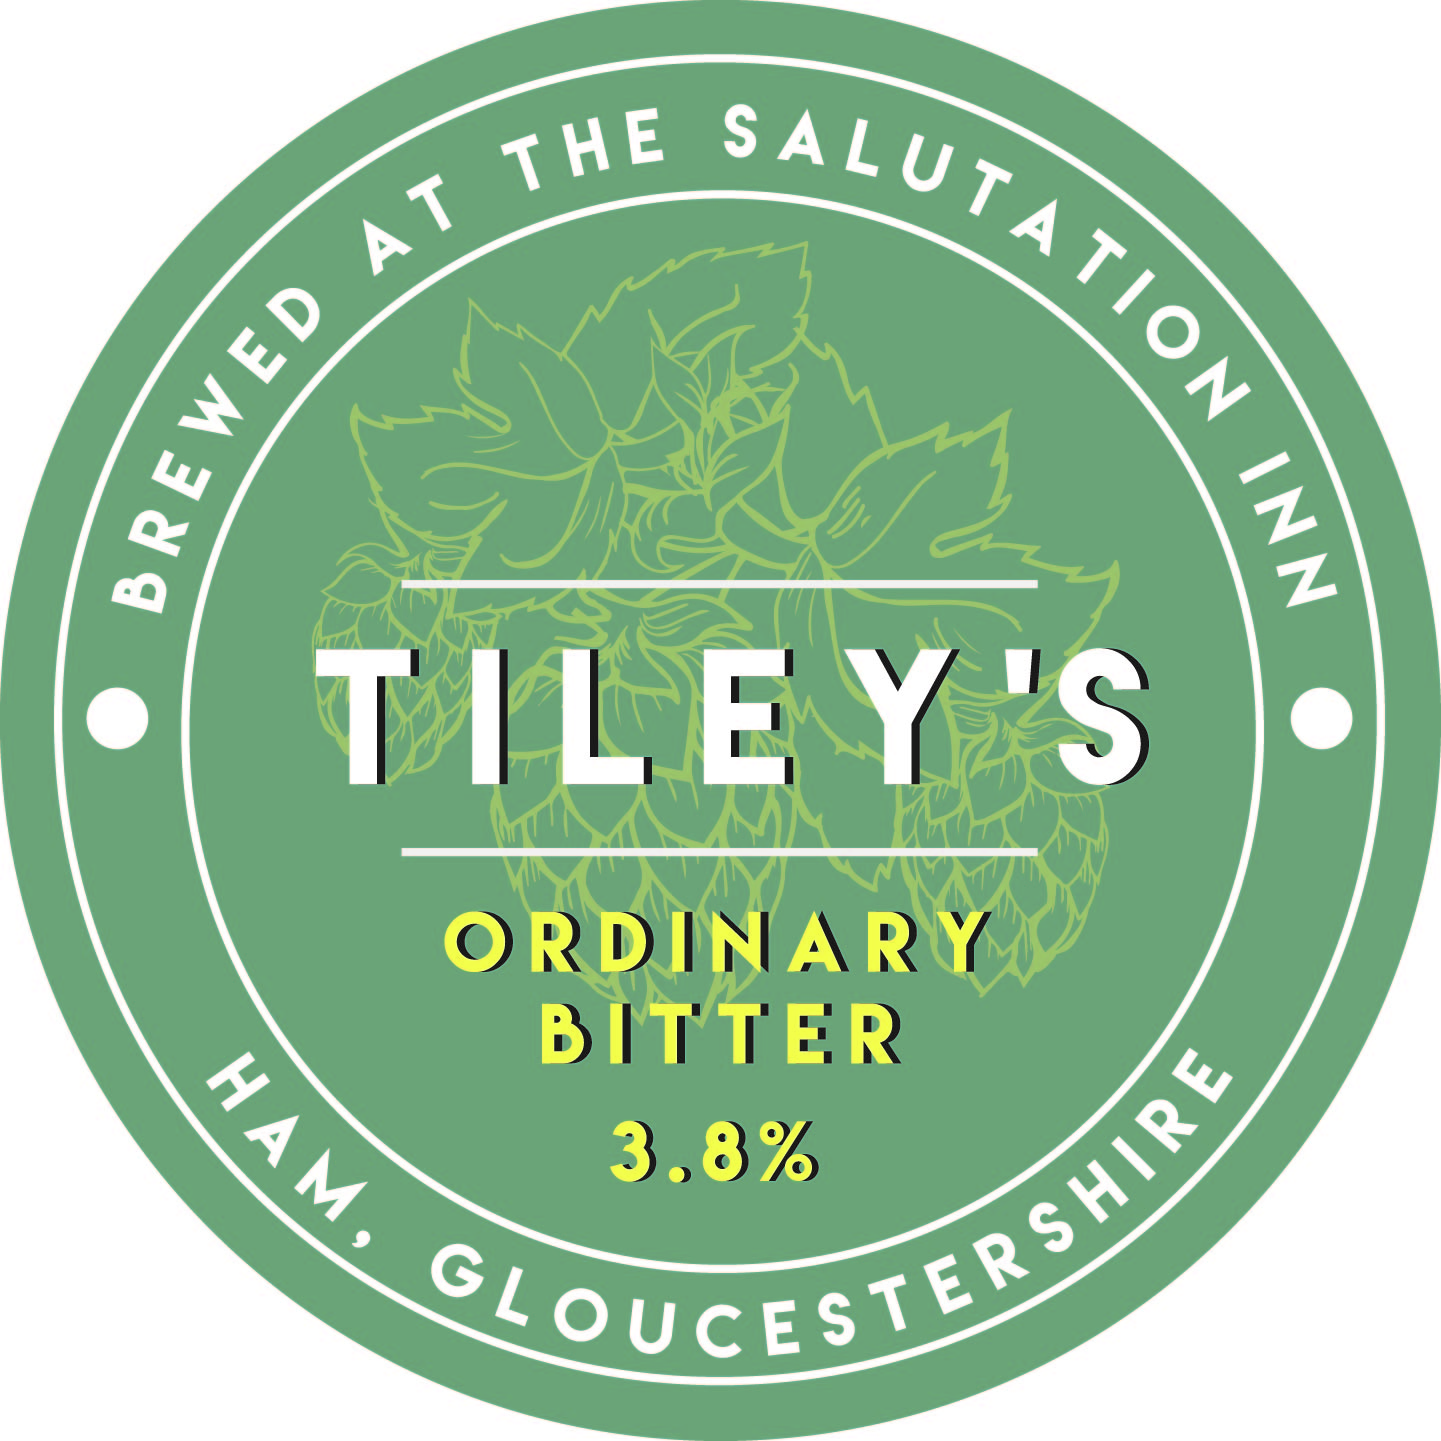 Tiley's Ordinary Bitter 3.8% Bag in Box